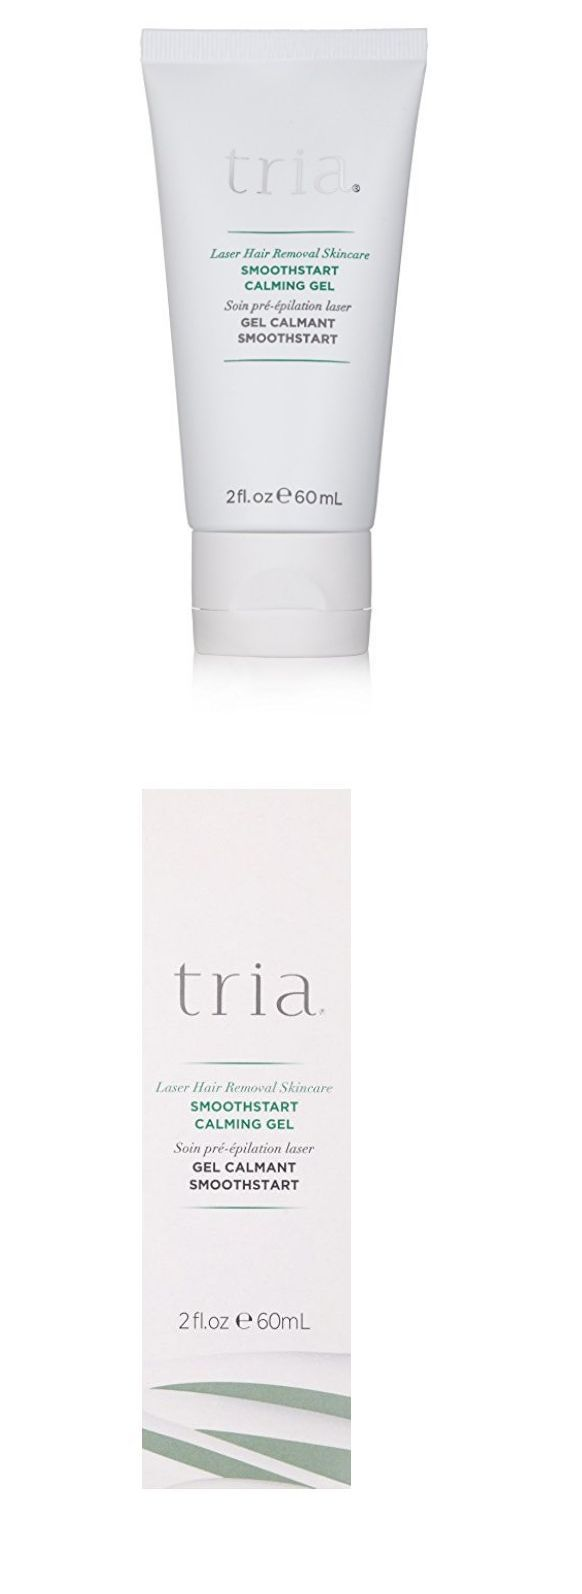 Hair Removal Creams and Sprays: Tria Laser Hair Removal Smoothing Calming Gel Smoothsmart New Beauty Sealed 2 Oz BUY IT NOW ONLY: $49.0